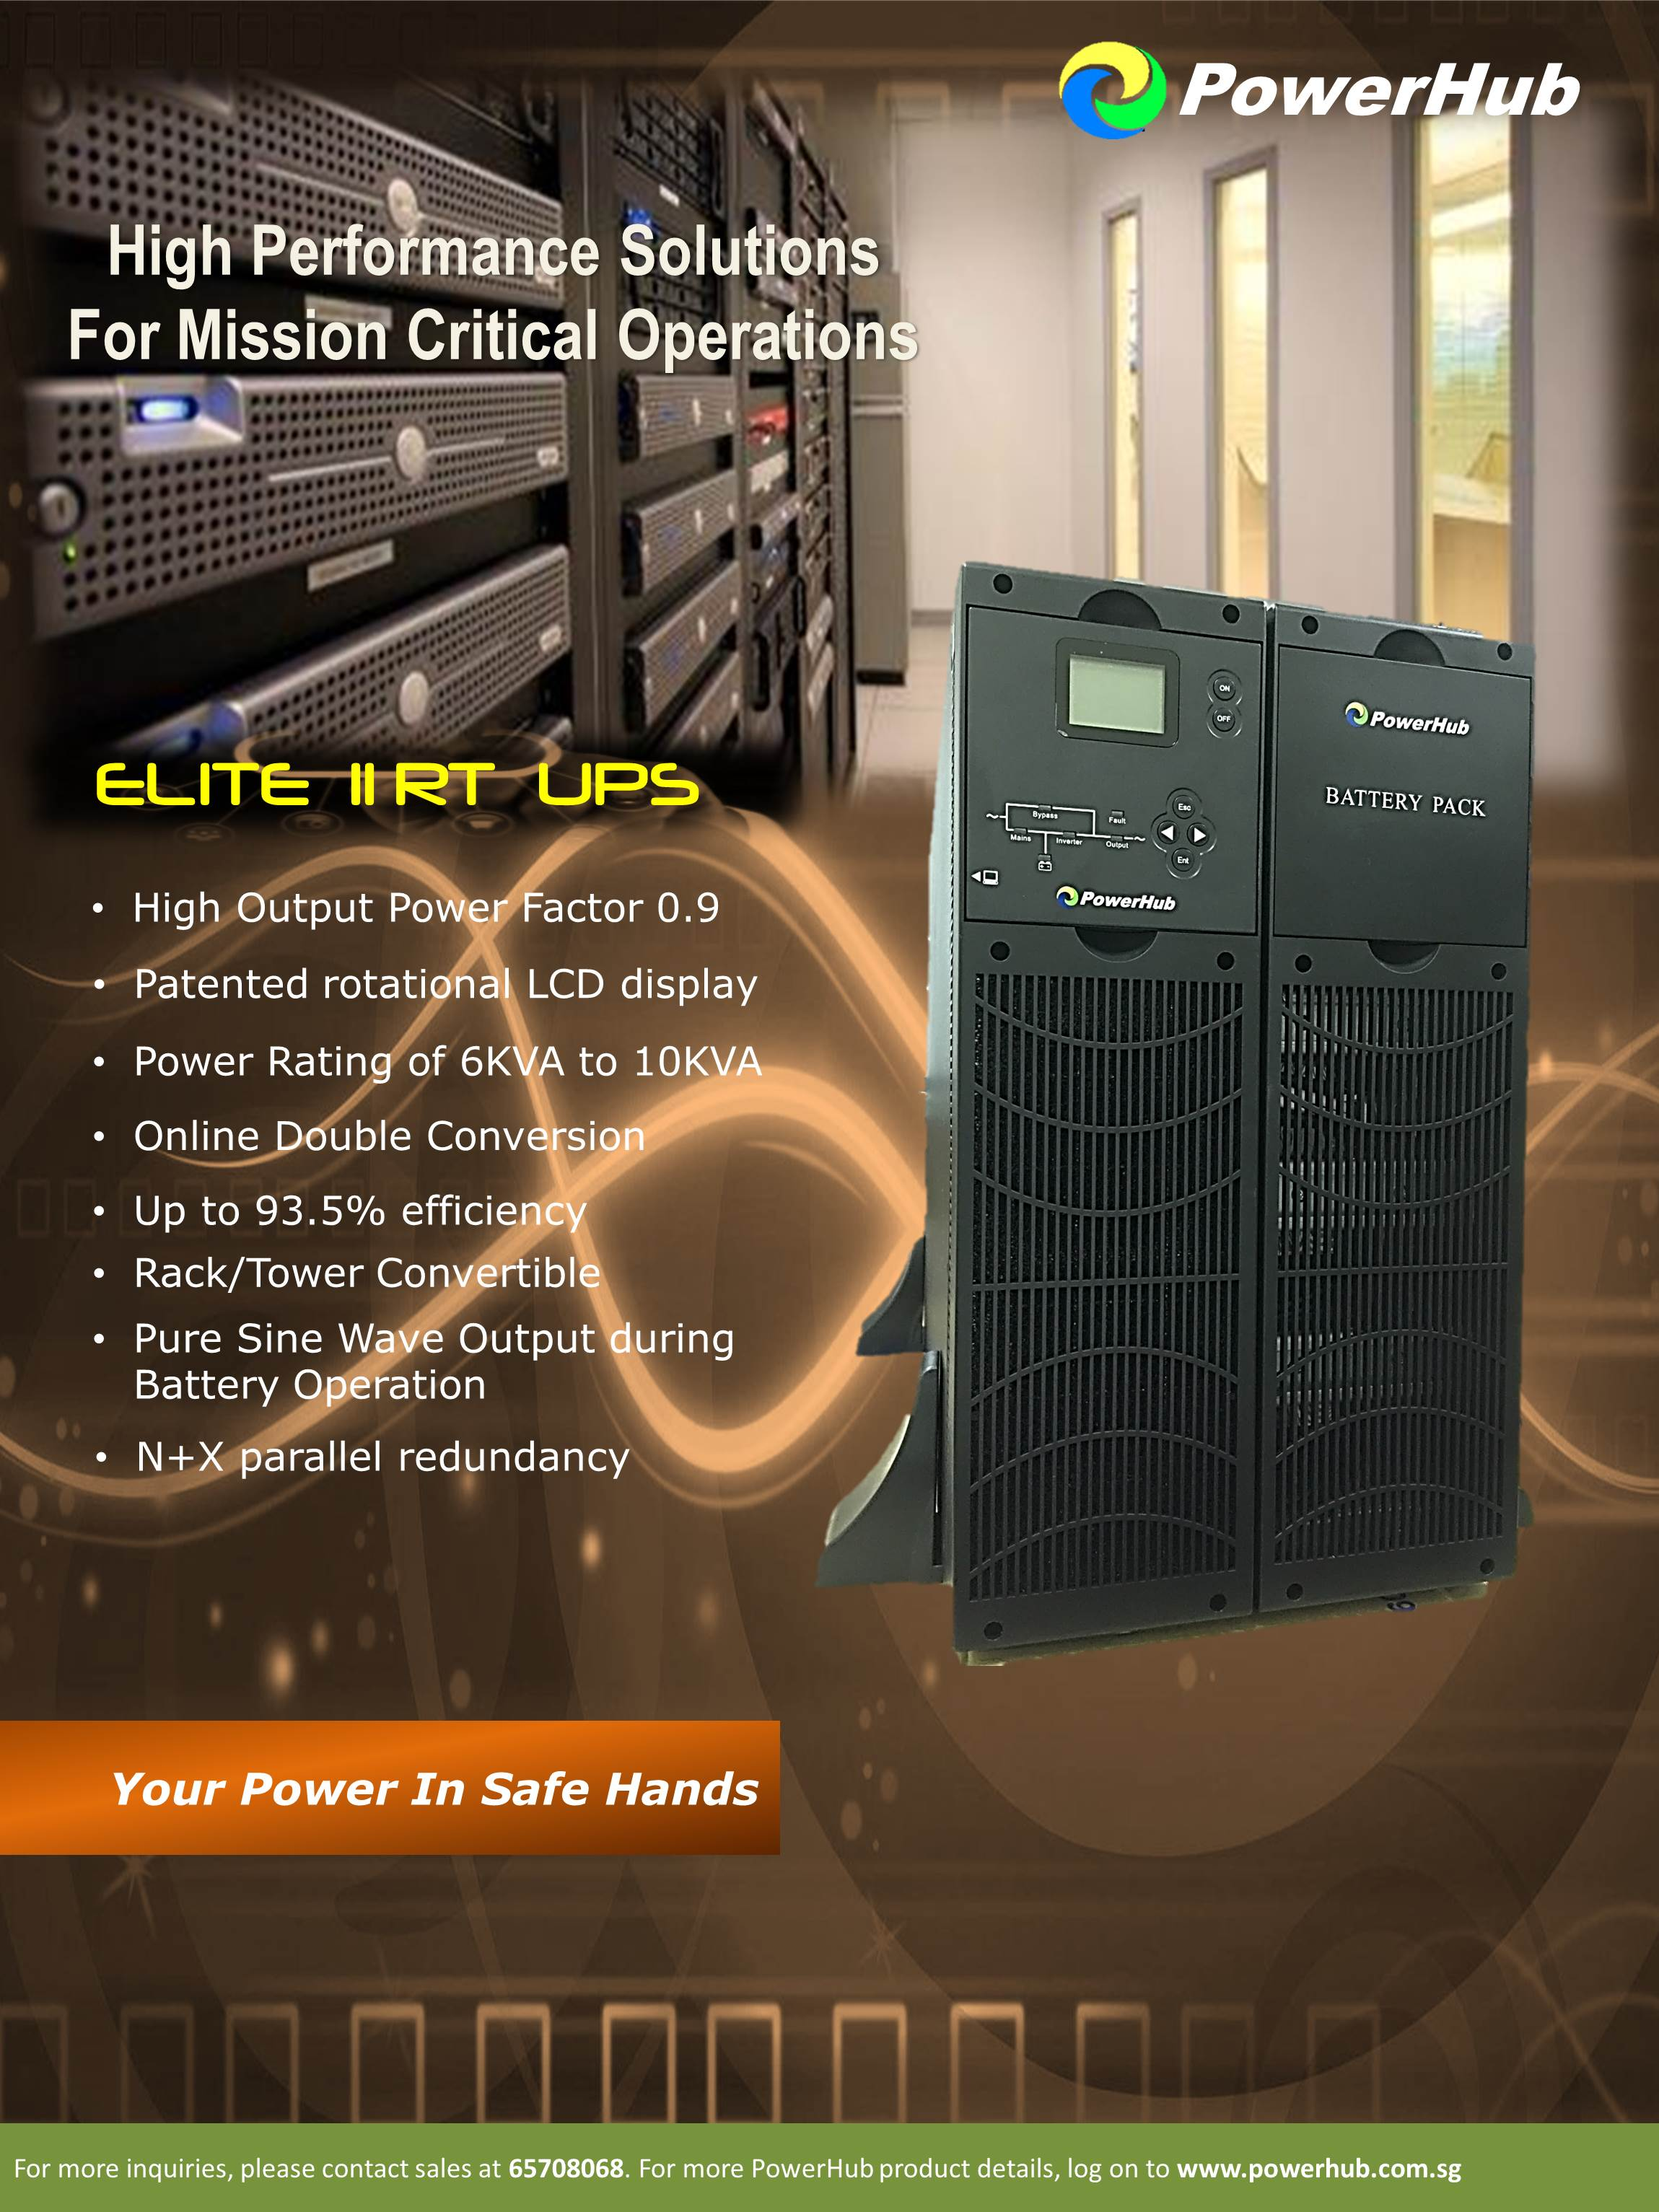 ELITE II RT UPS Rack/Tower